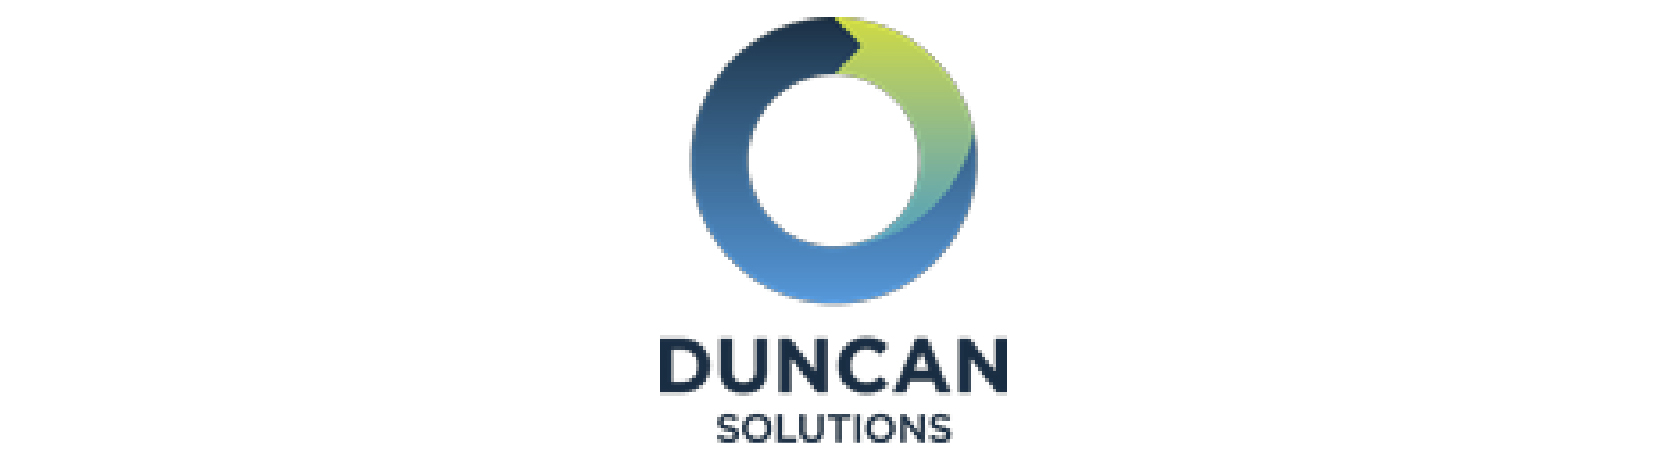 "Duncan Solutions - Duncan Solutions offers integrated parking and smart city technology solutions using its proprietary Parking Enterprise Management System. The solution suite includes meters, sensors, guidance, payment and enforcement software.""Alpin saw the potential for Duncan Solutions from the outset. They managed to negotiate a great outcome through the transaction by understanding the motivations of all parties and creating a high level of trust."" - Trent Loebel, CEO, Duncan Solutions."